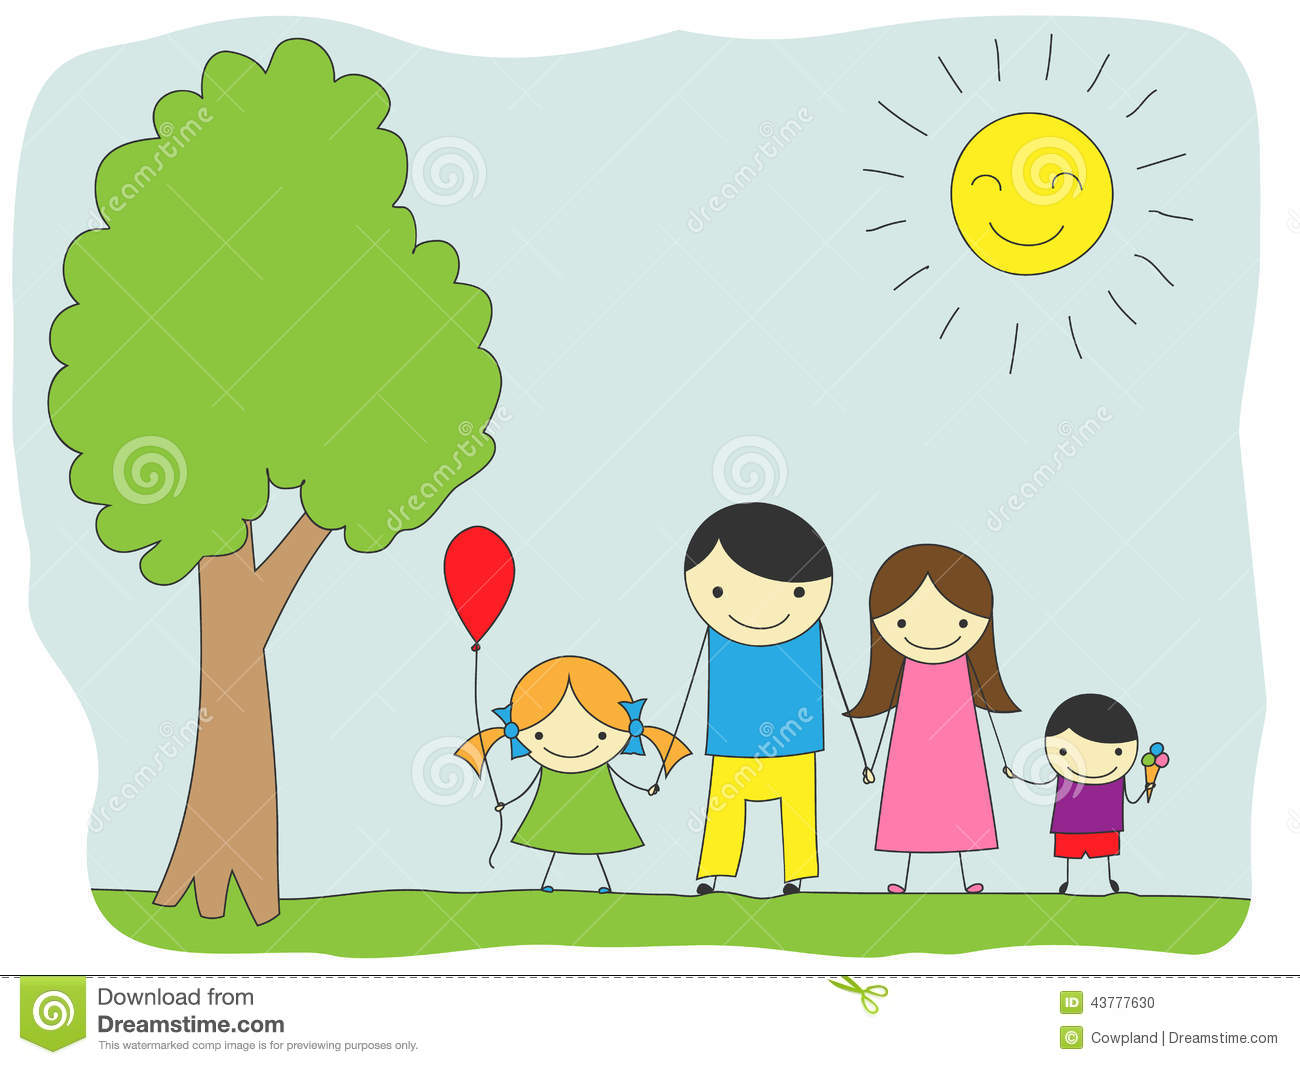 Family outing clipart.